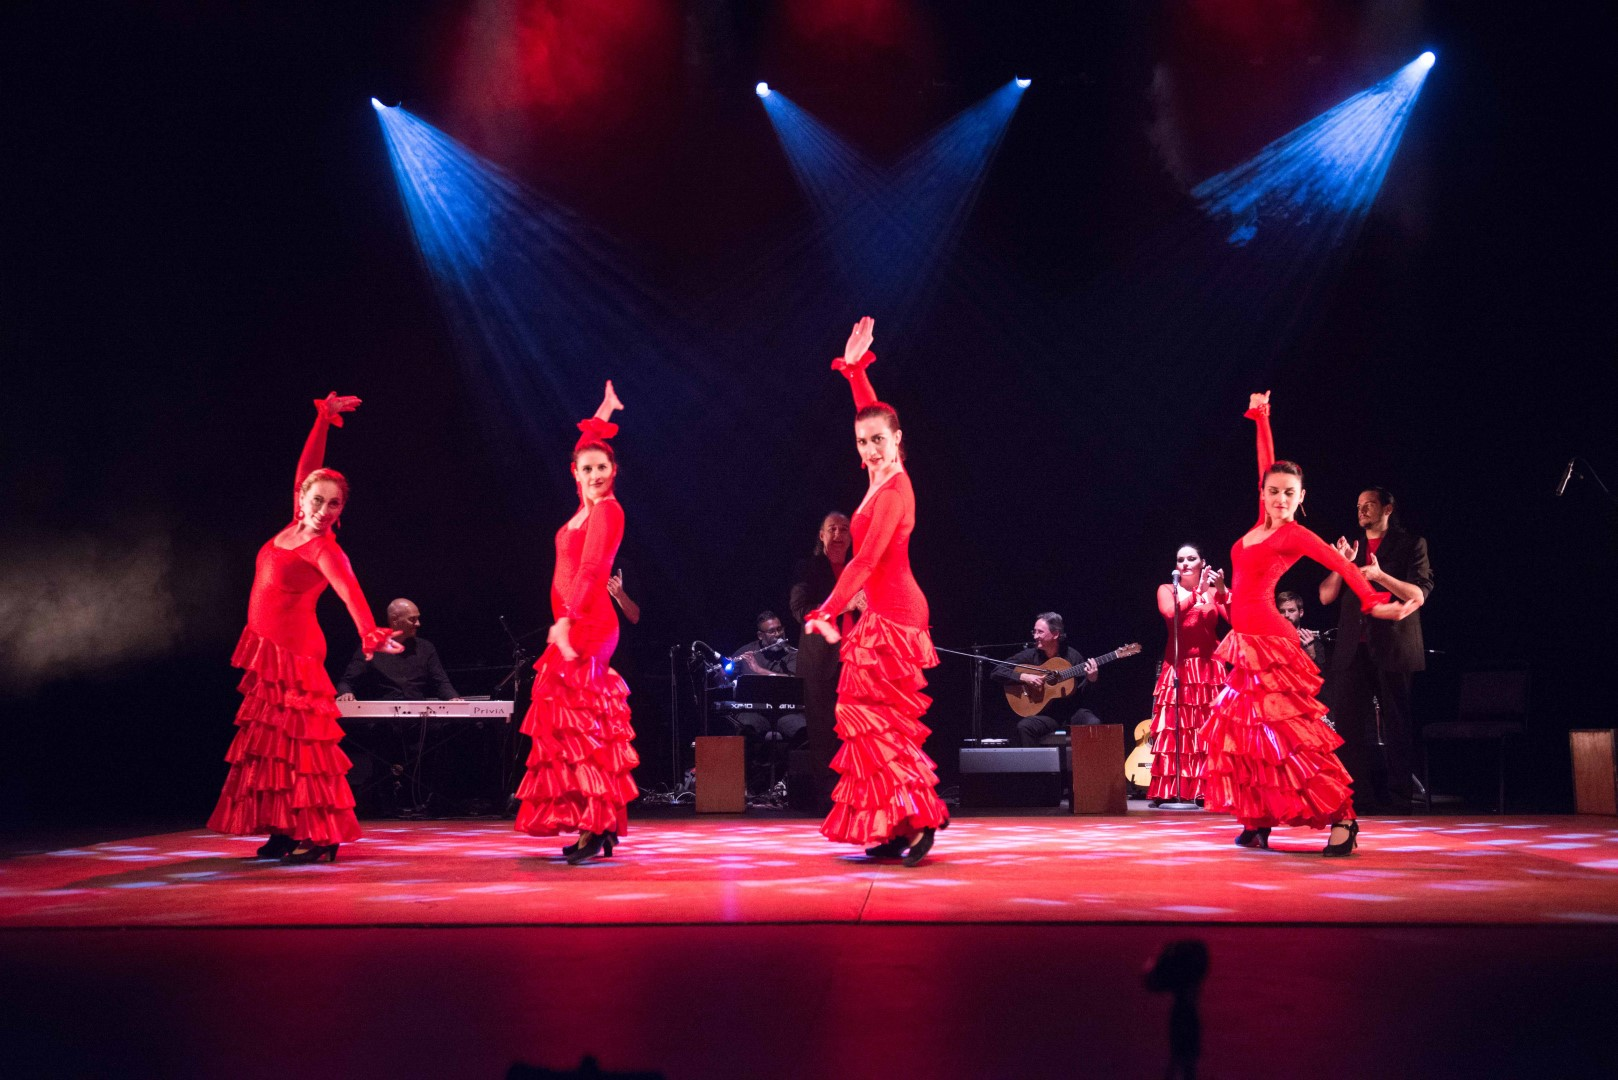 Latin Heat & Flamenco Show at UKZN